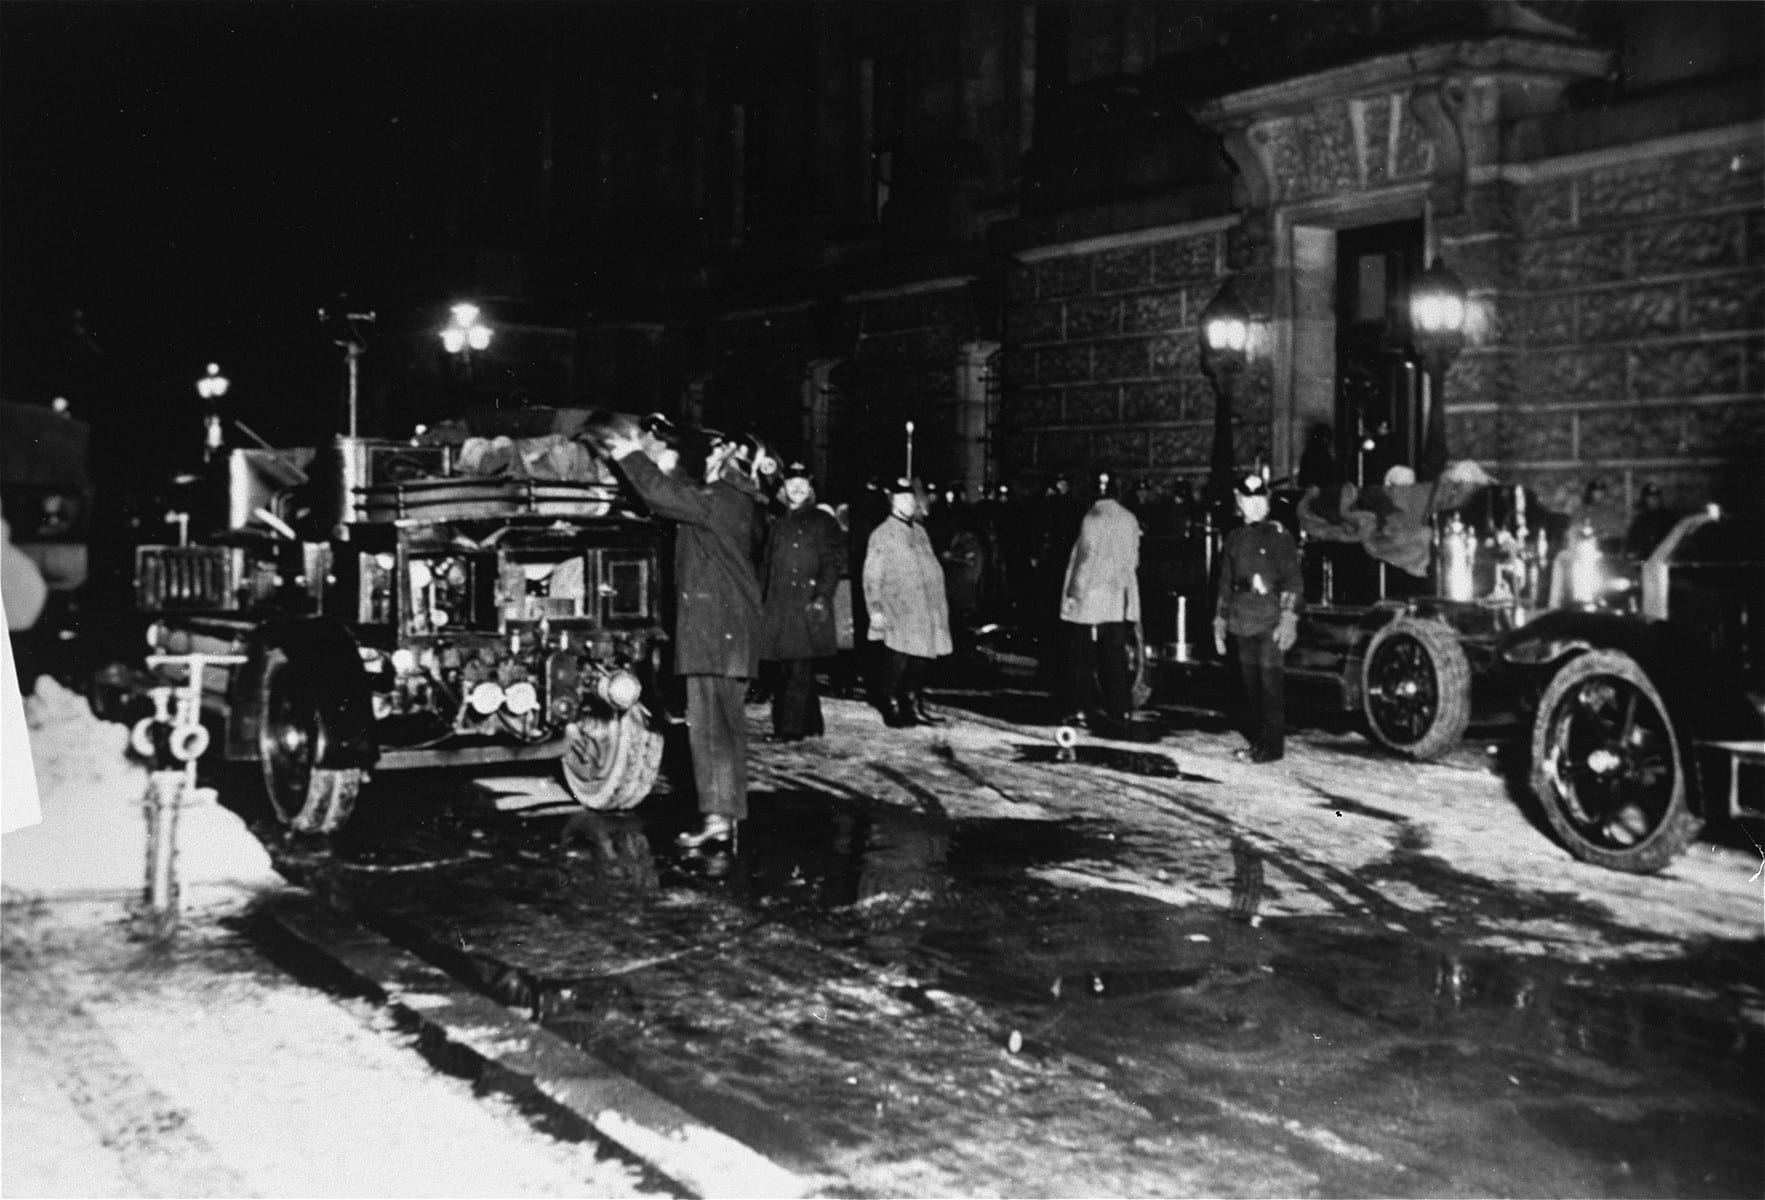 Firefighters arrive at the German parliament during the Reichstag fire, February 27th 1933